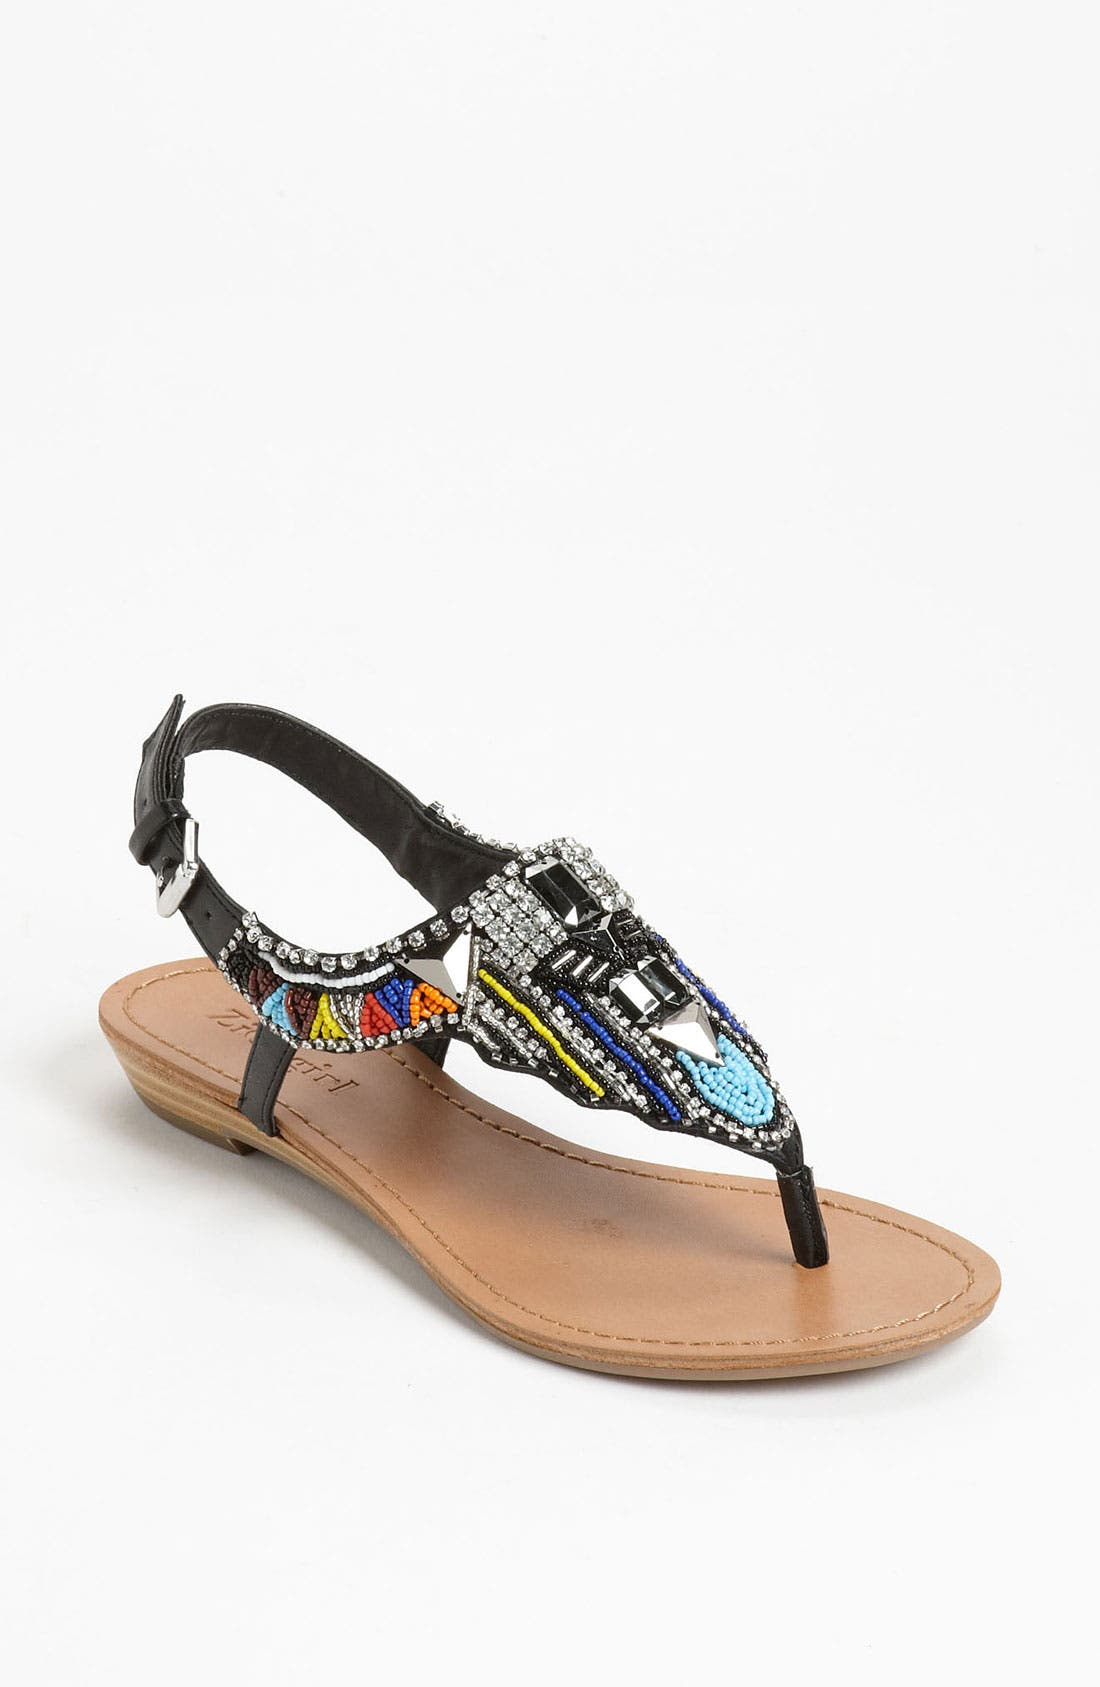 Alternate Image 1 Selected - ZiGi girl 'Kindle' Sandal